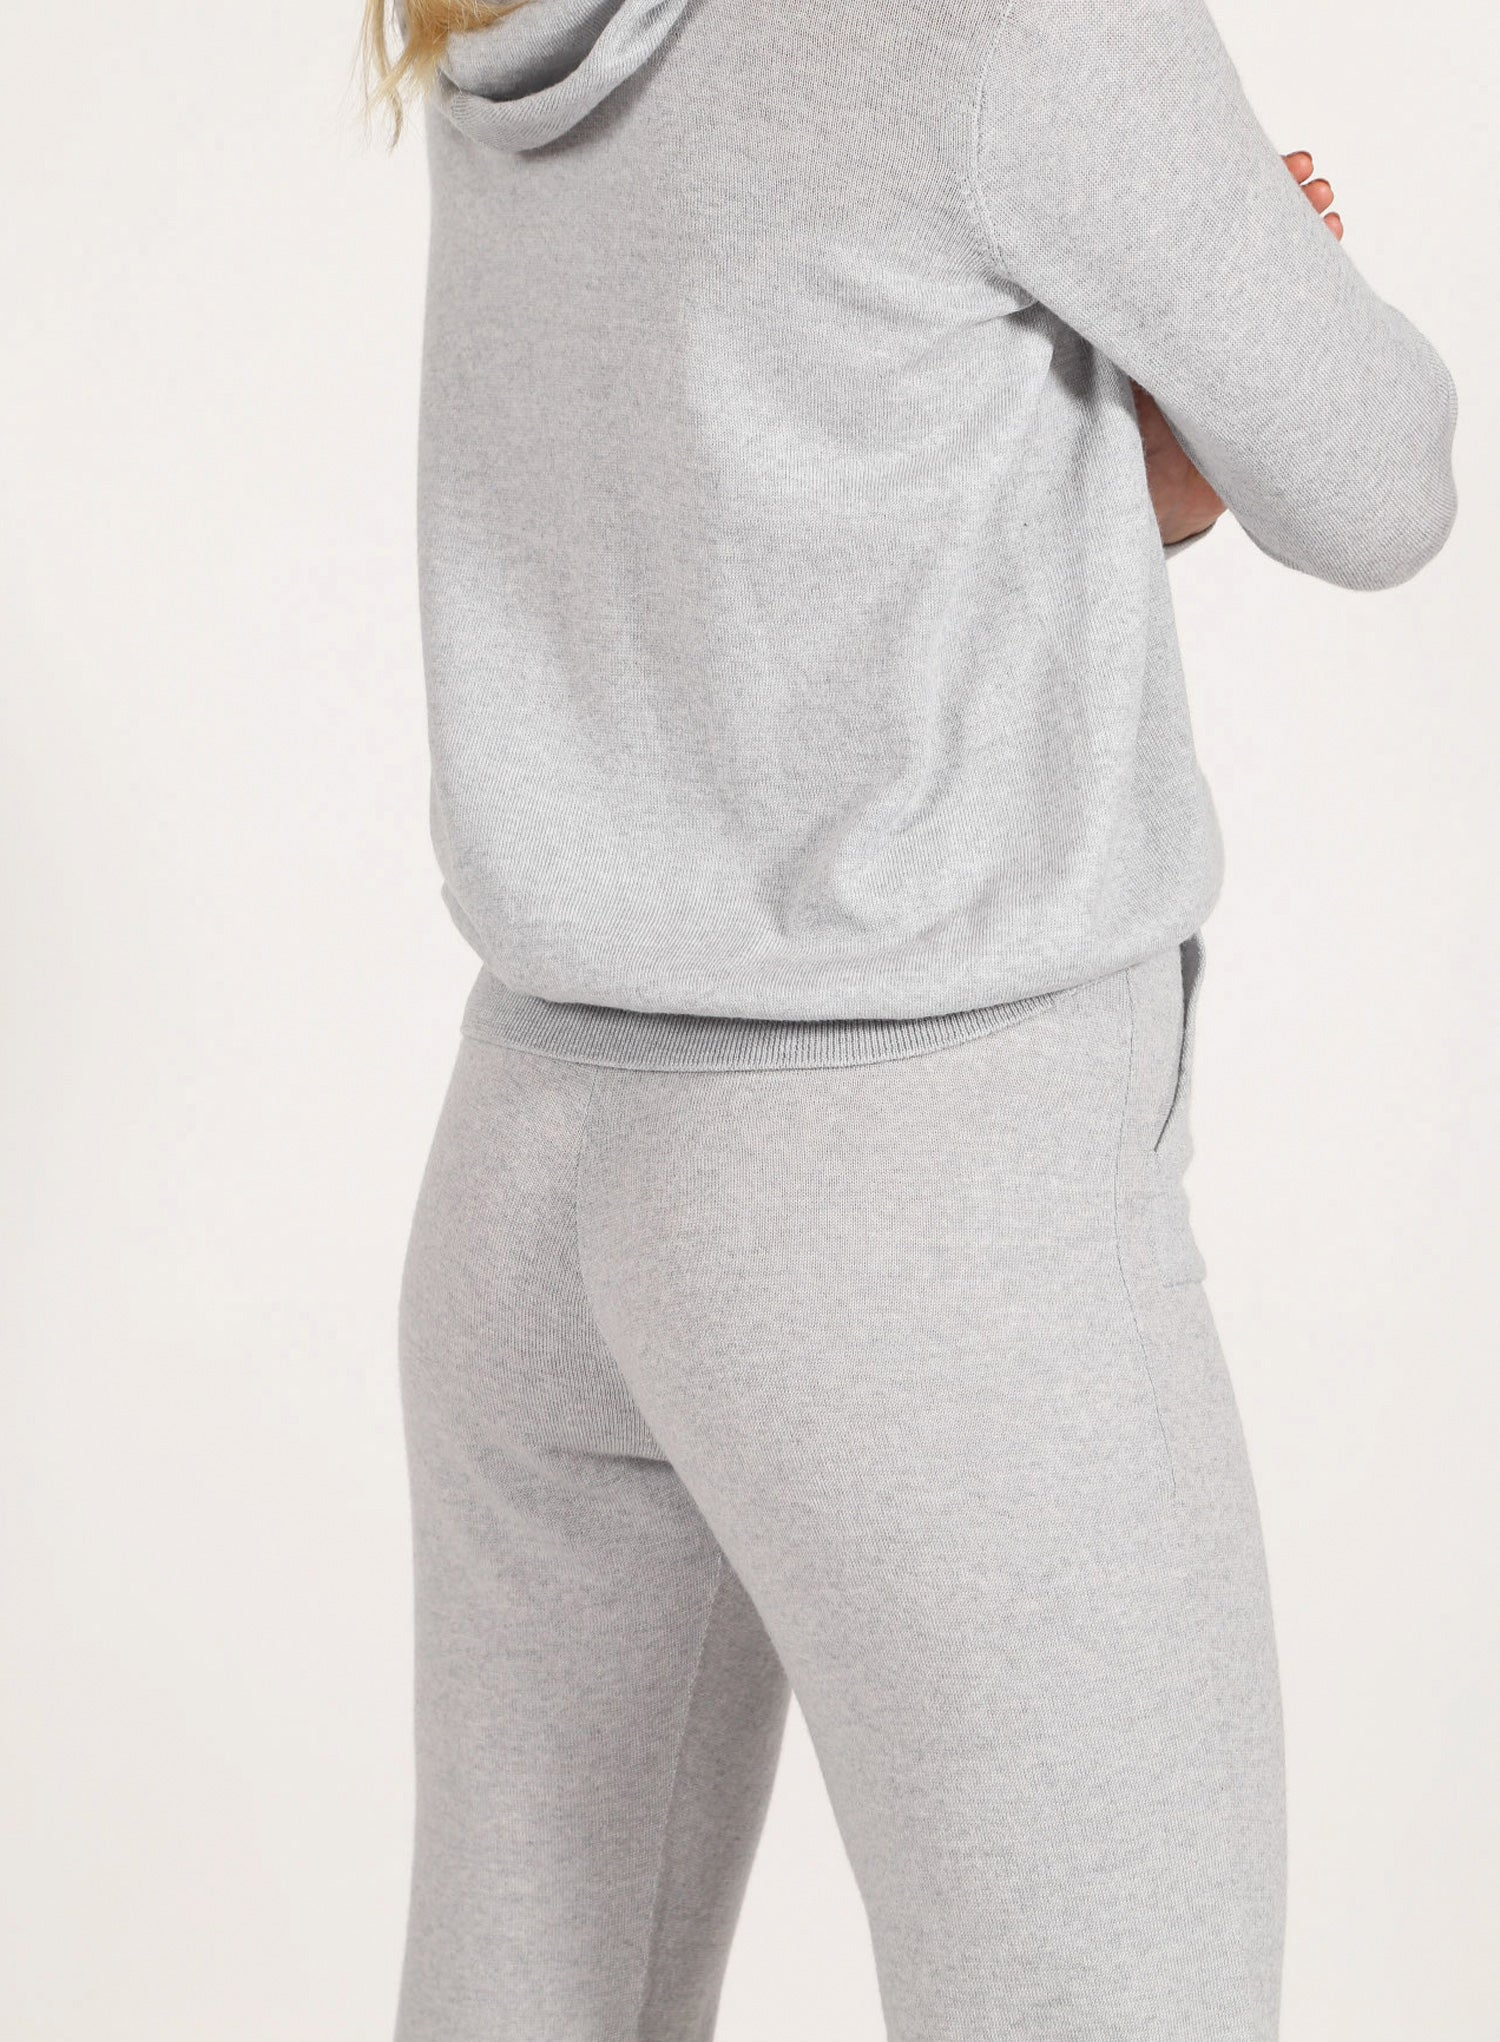 PW Ultrafine Merino Pant - Cloud